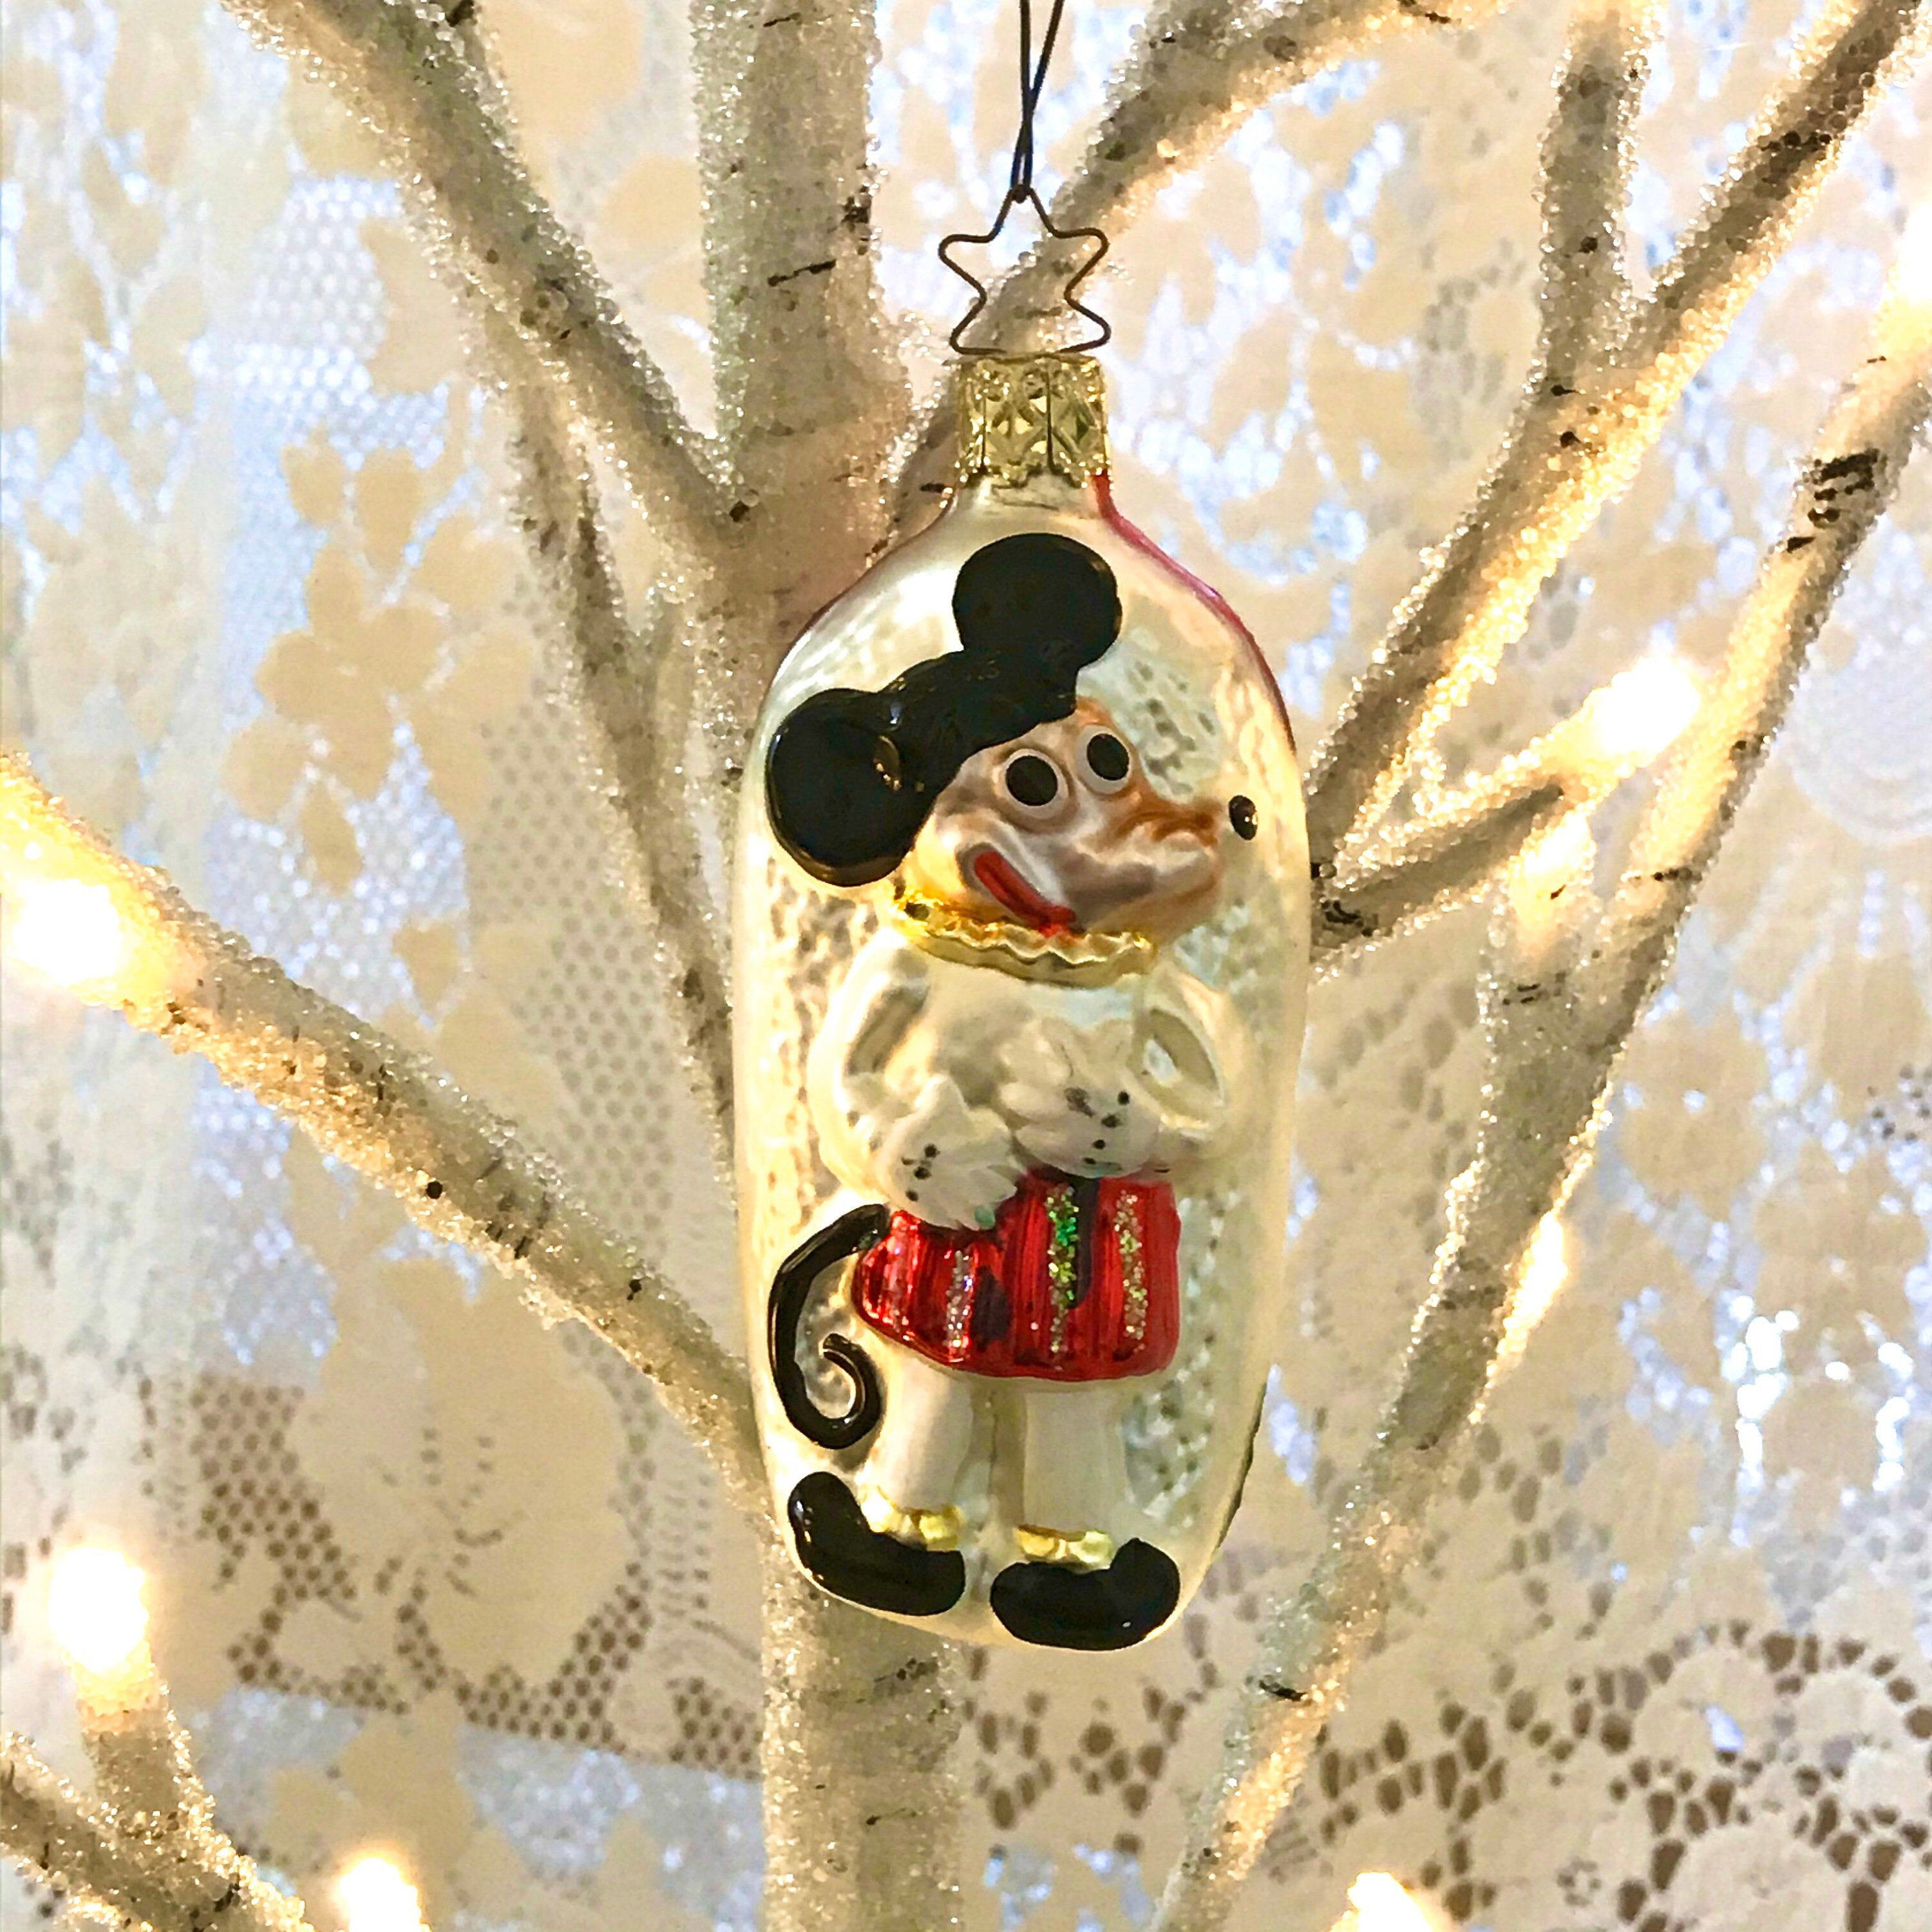 Old World Christmas Church Mouse Retired Blown Glass Ornament #churchitems